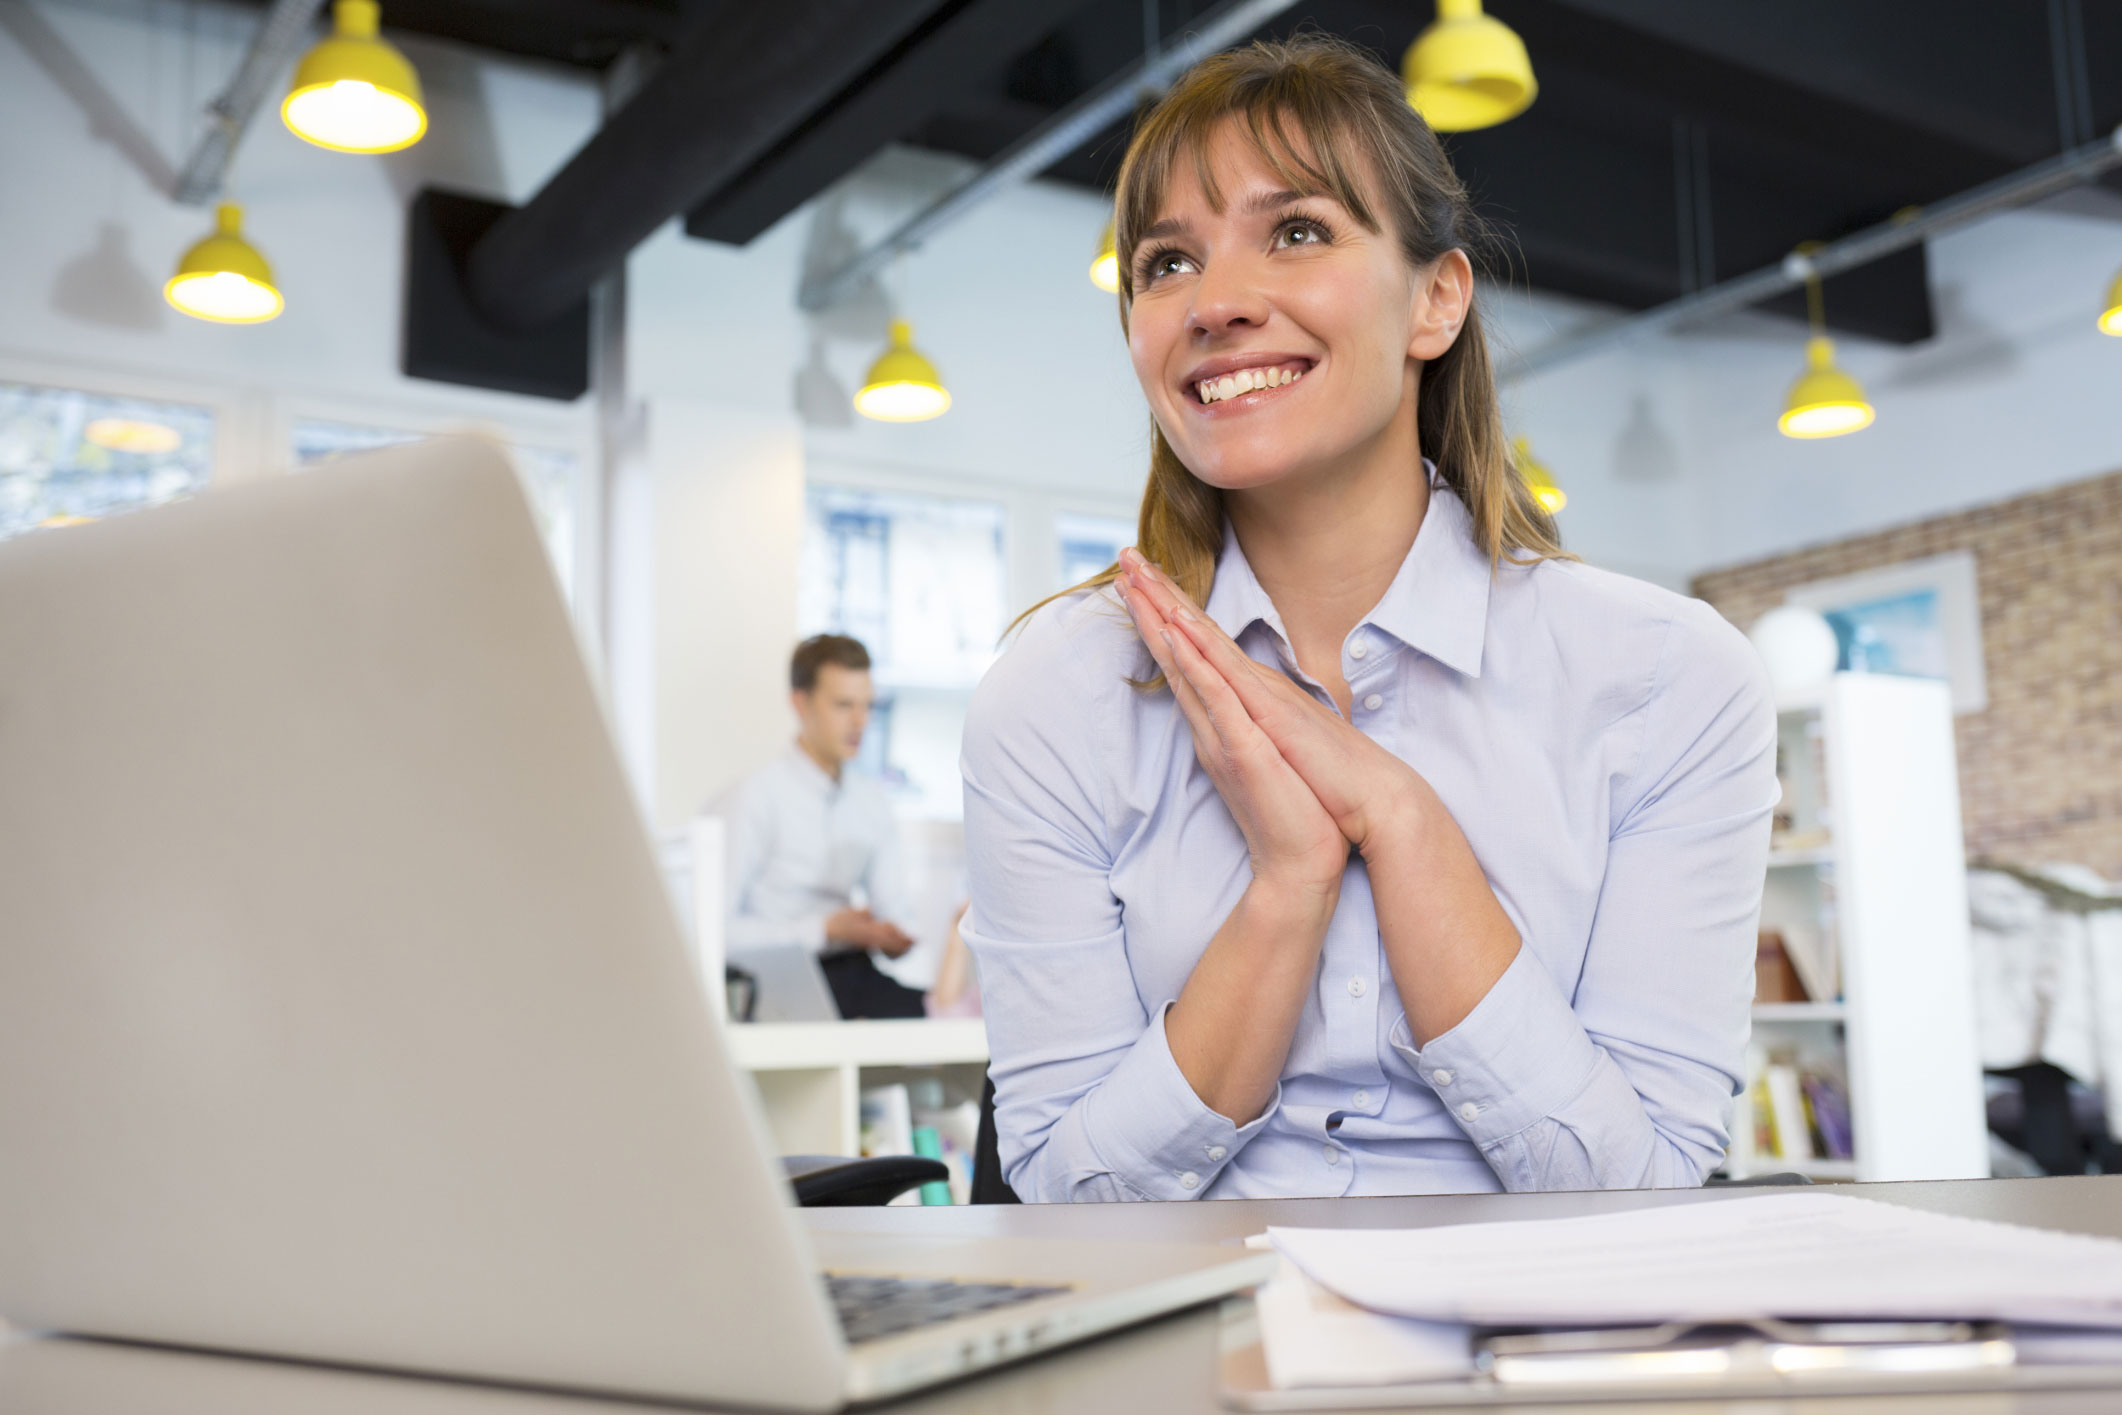 job satisfaction in the workplace